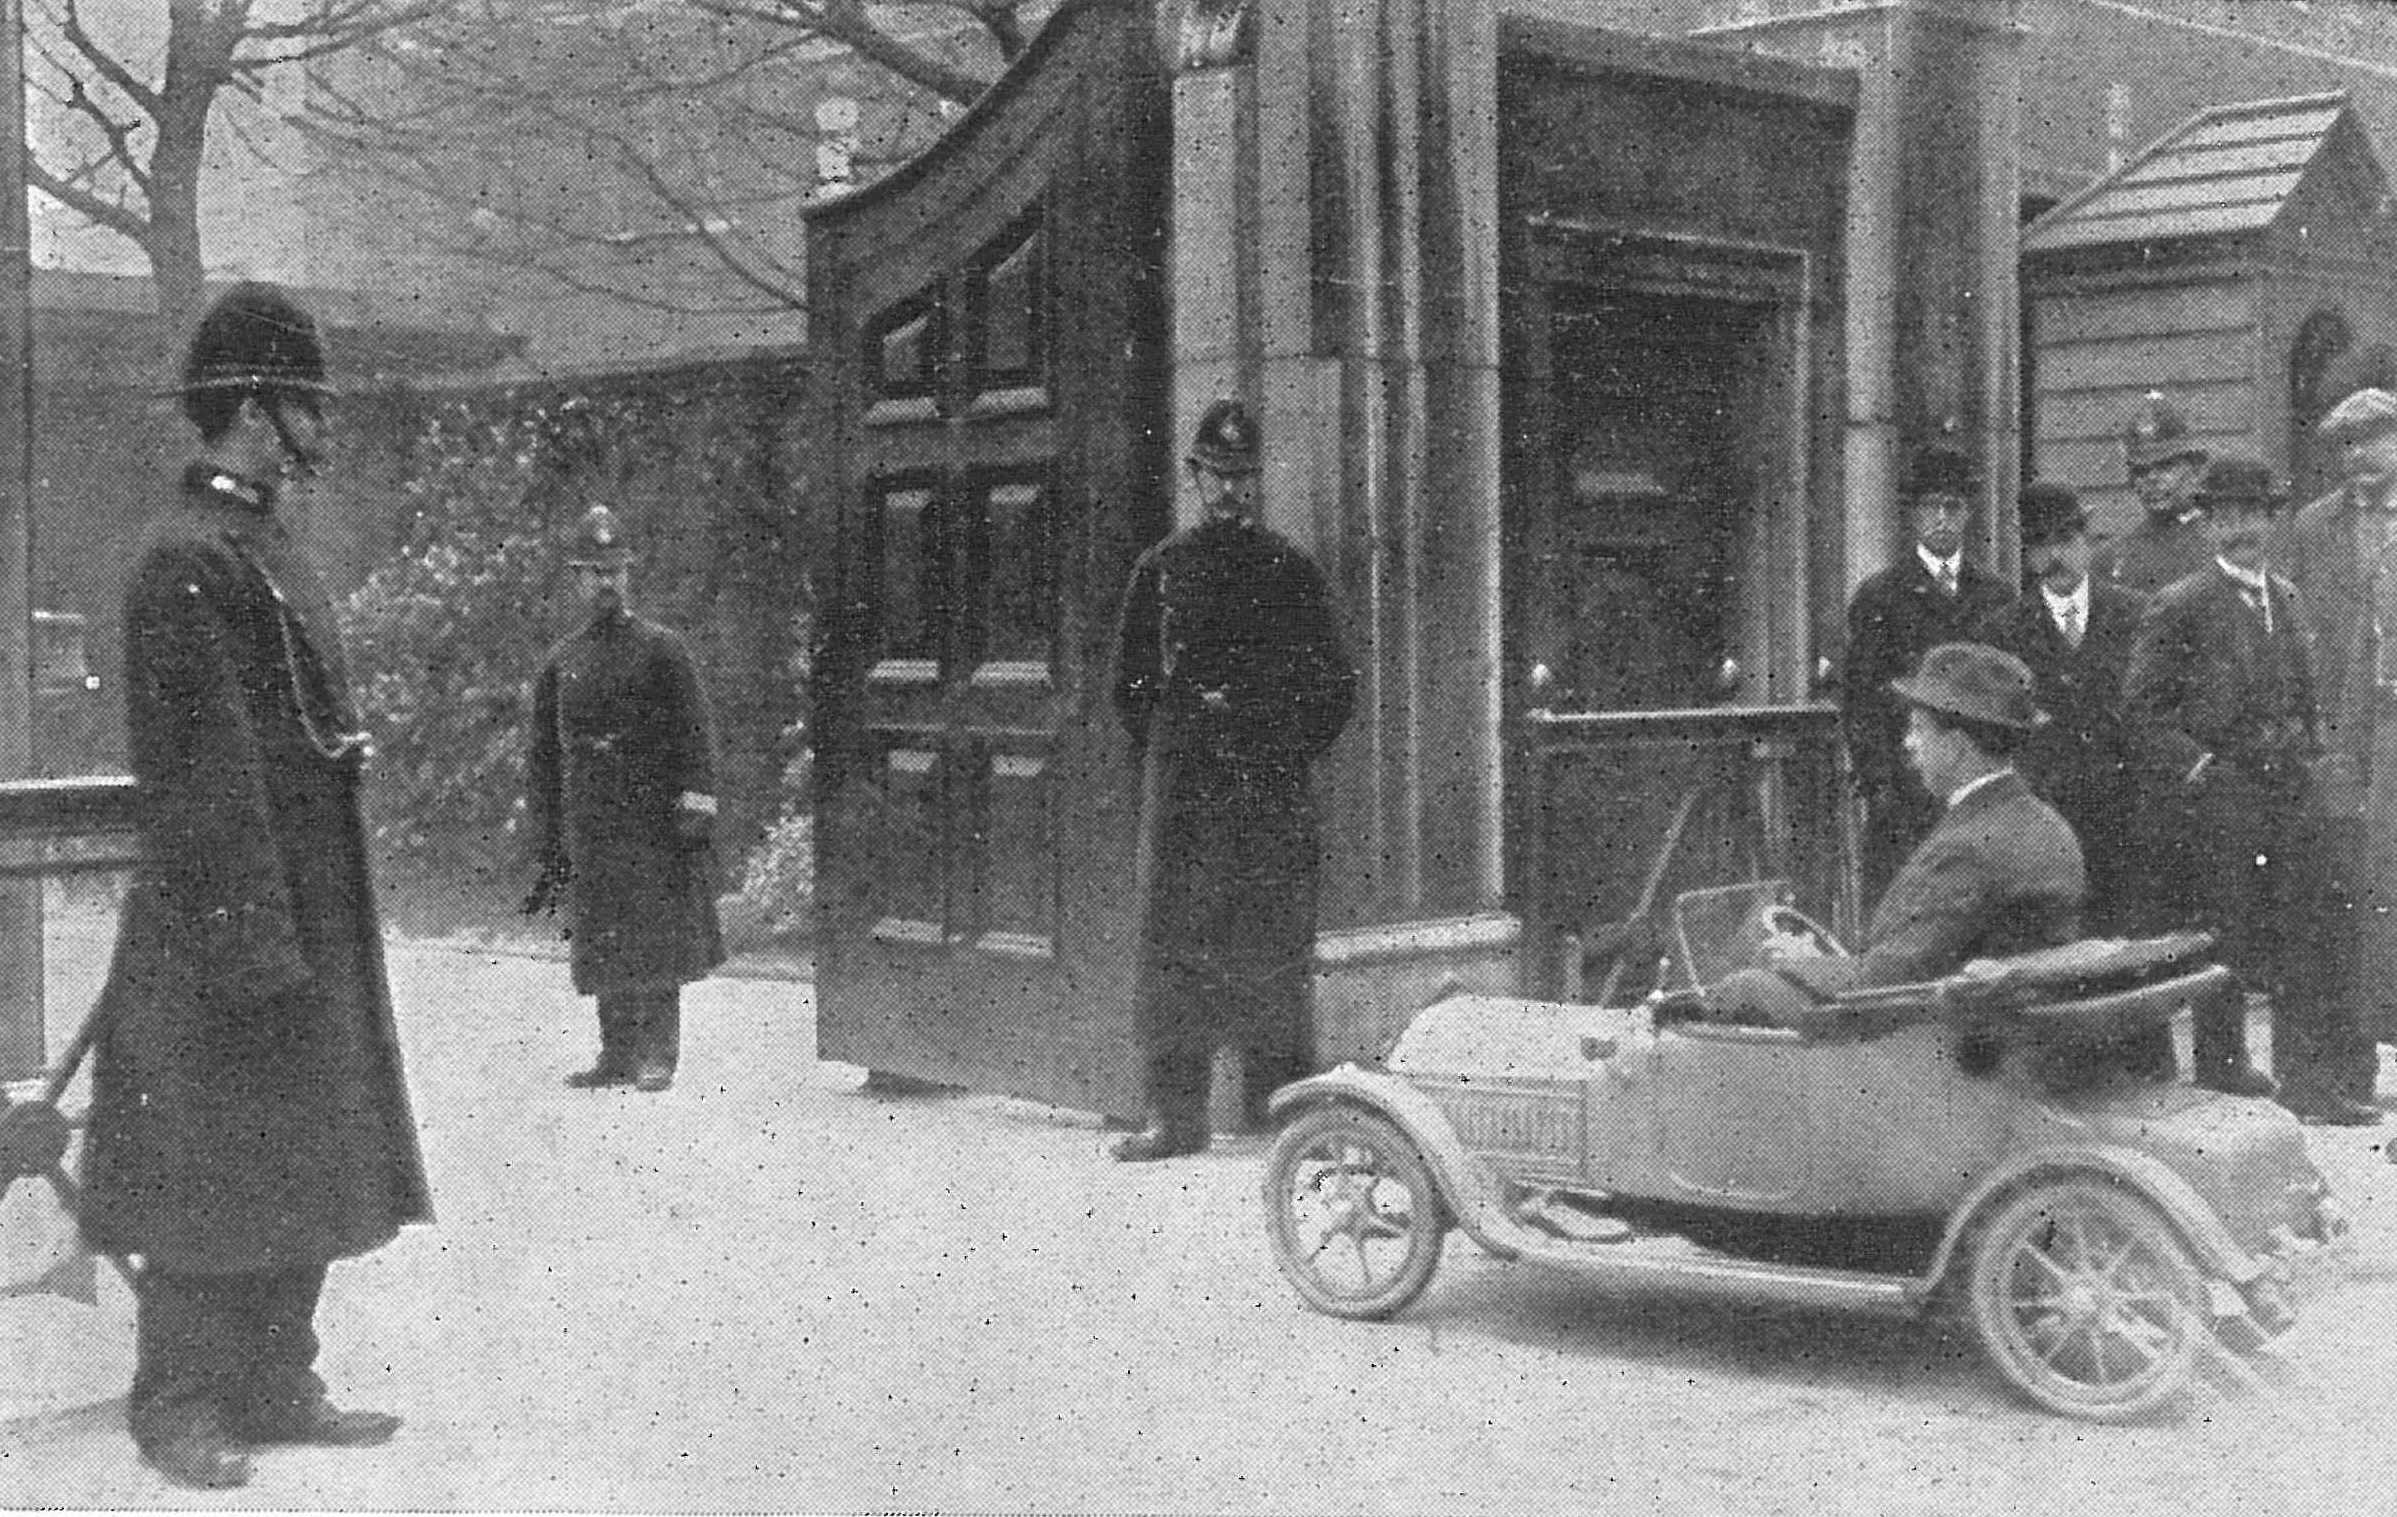 Seen here is Prince Olaf's car been delivered to Queen Alexandra's residence at Marlborough House.